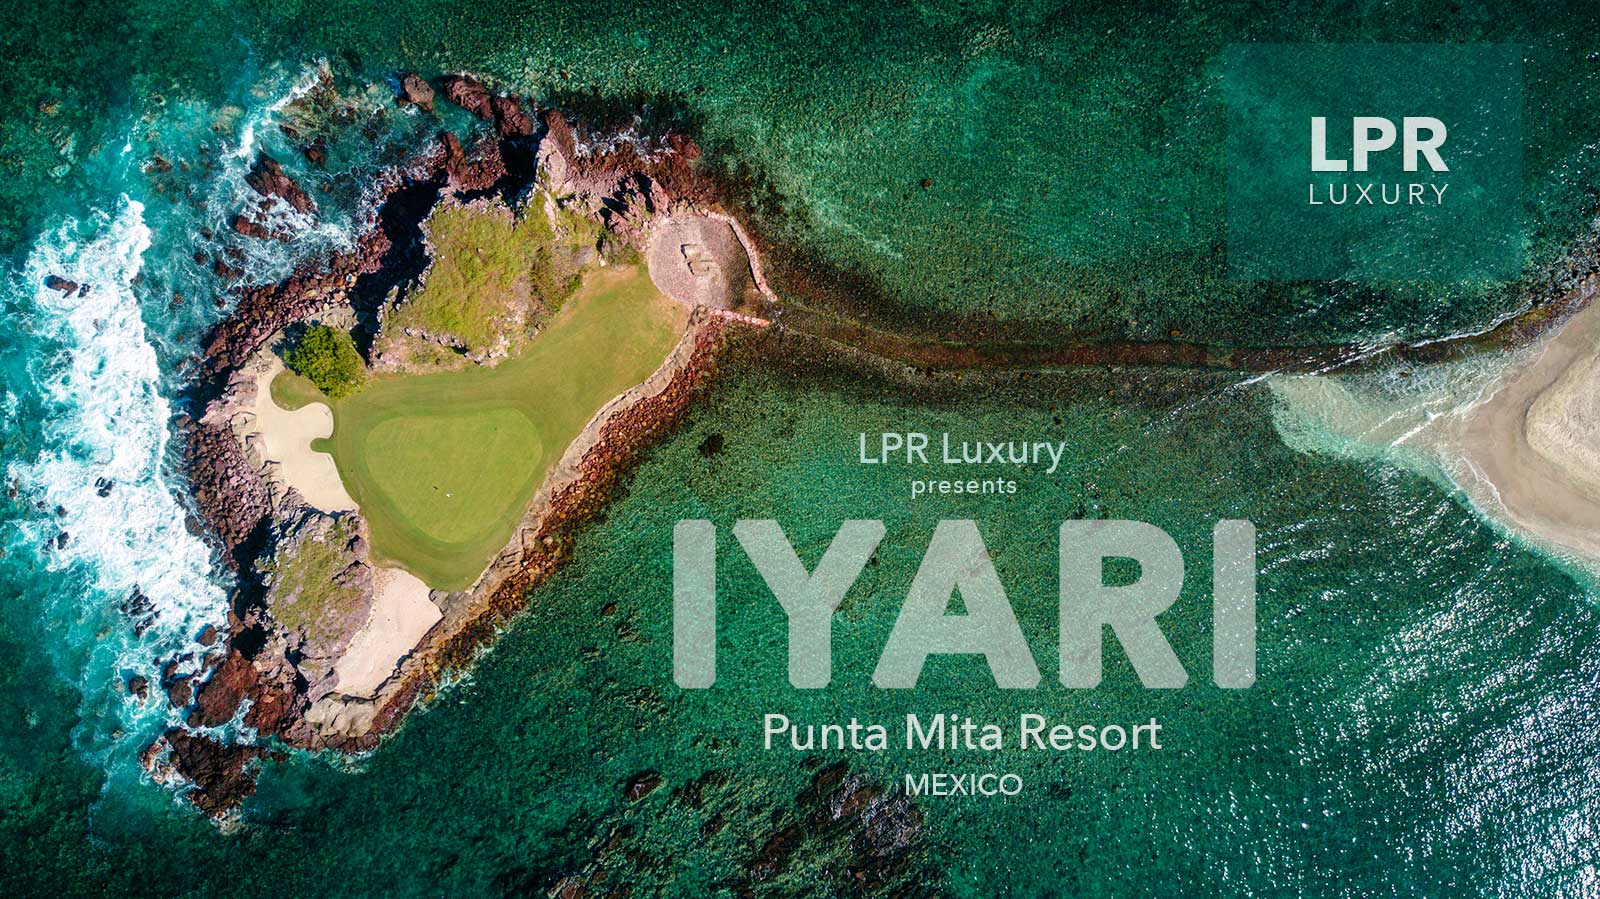 Iyari Punta Mita - Luxury real estate - Homes and homesite at the Punta Mita Resort